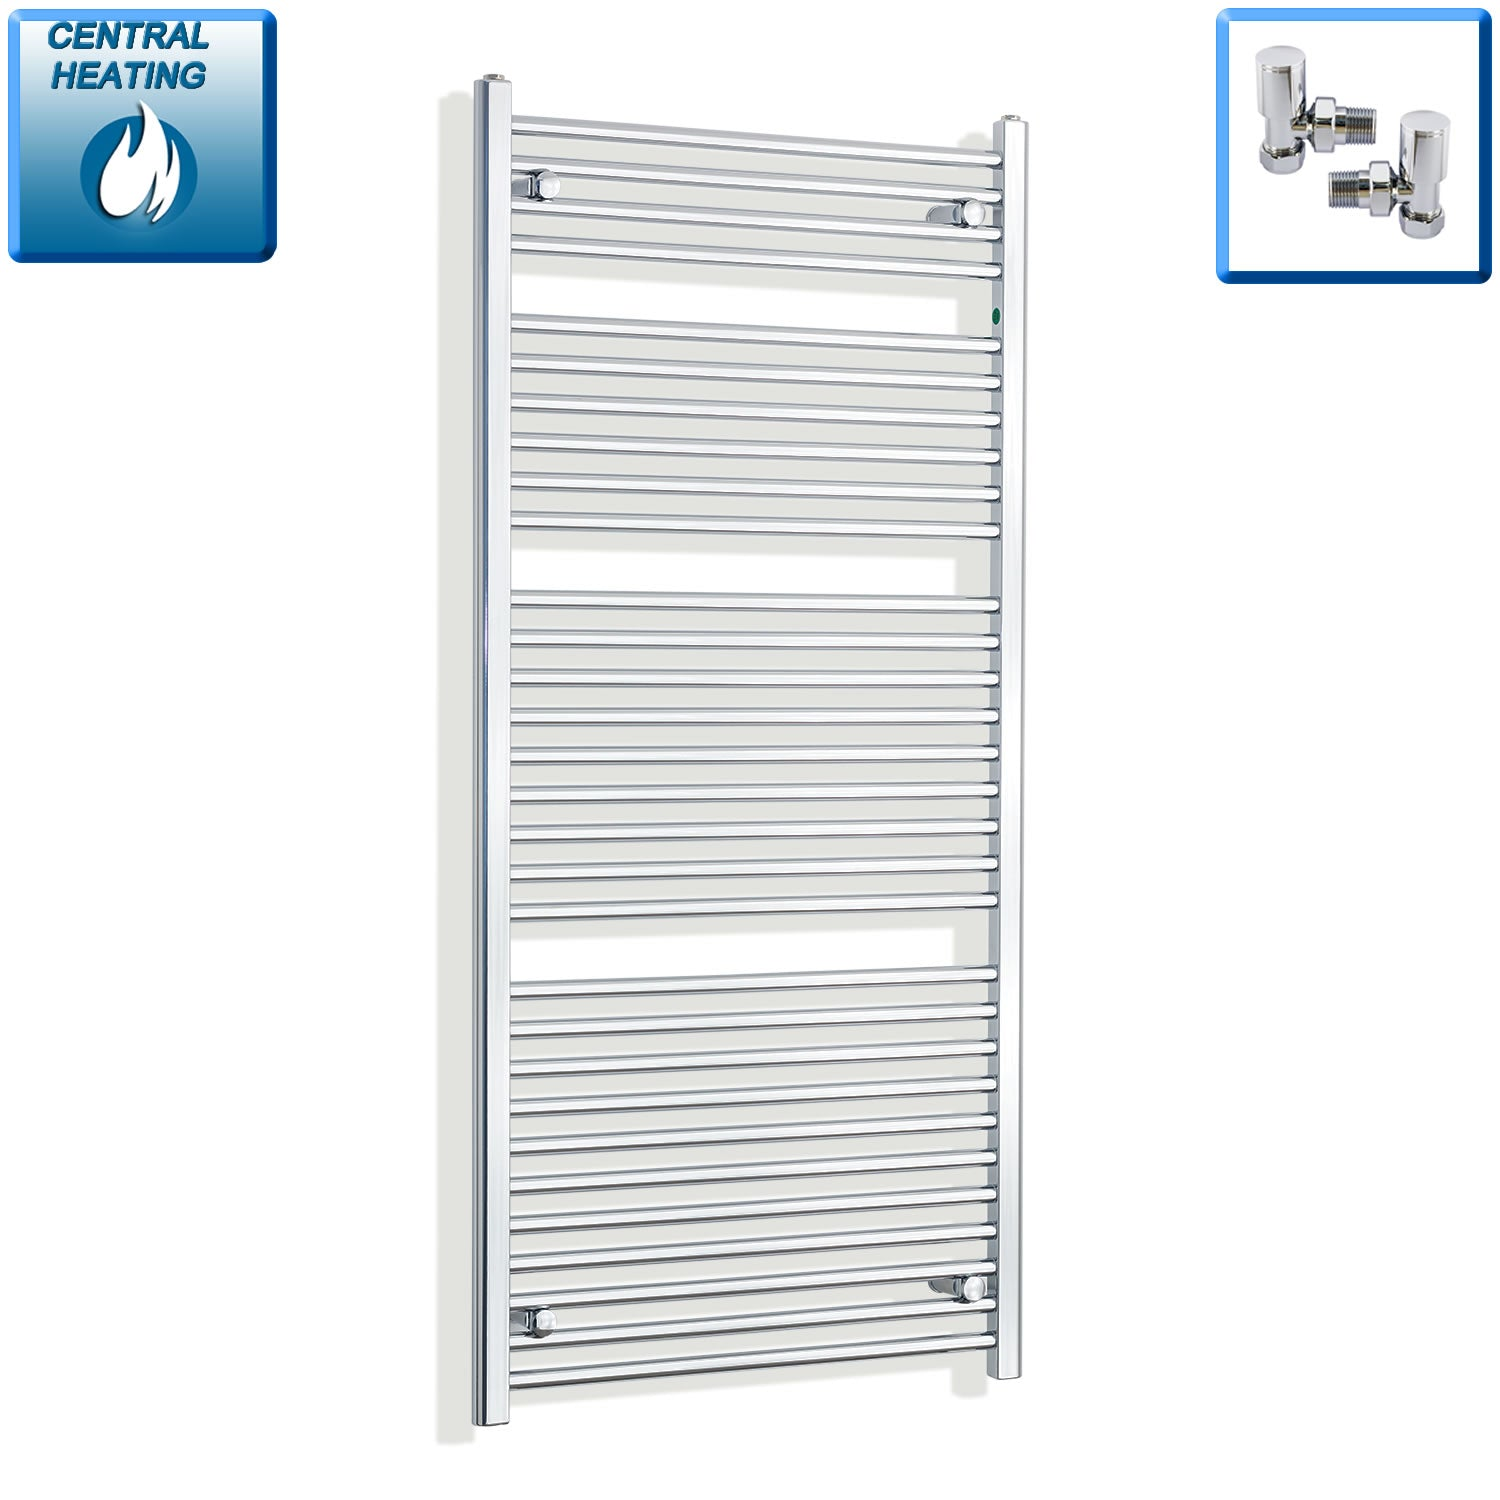 750mm Wide 1500mm High Curved Chrome Heated Towel Rail Radiator HTR,With Angled Valve